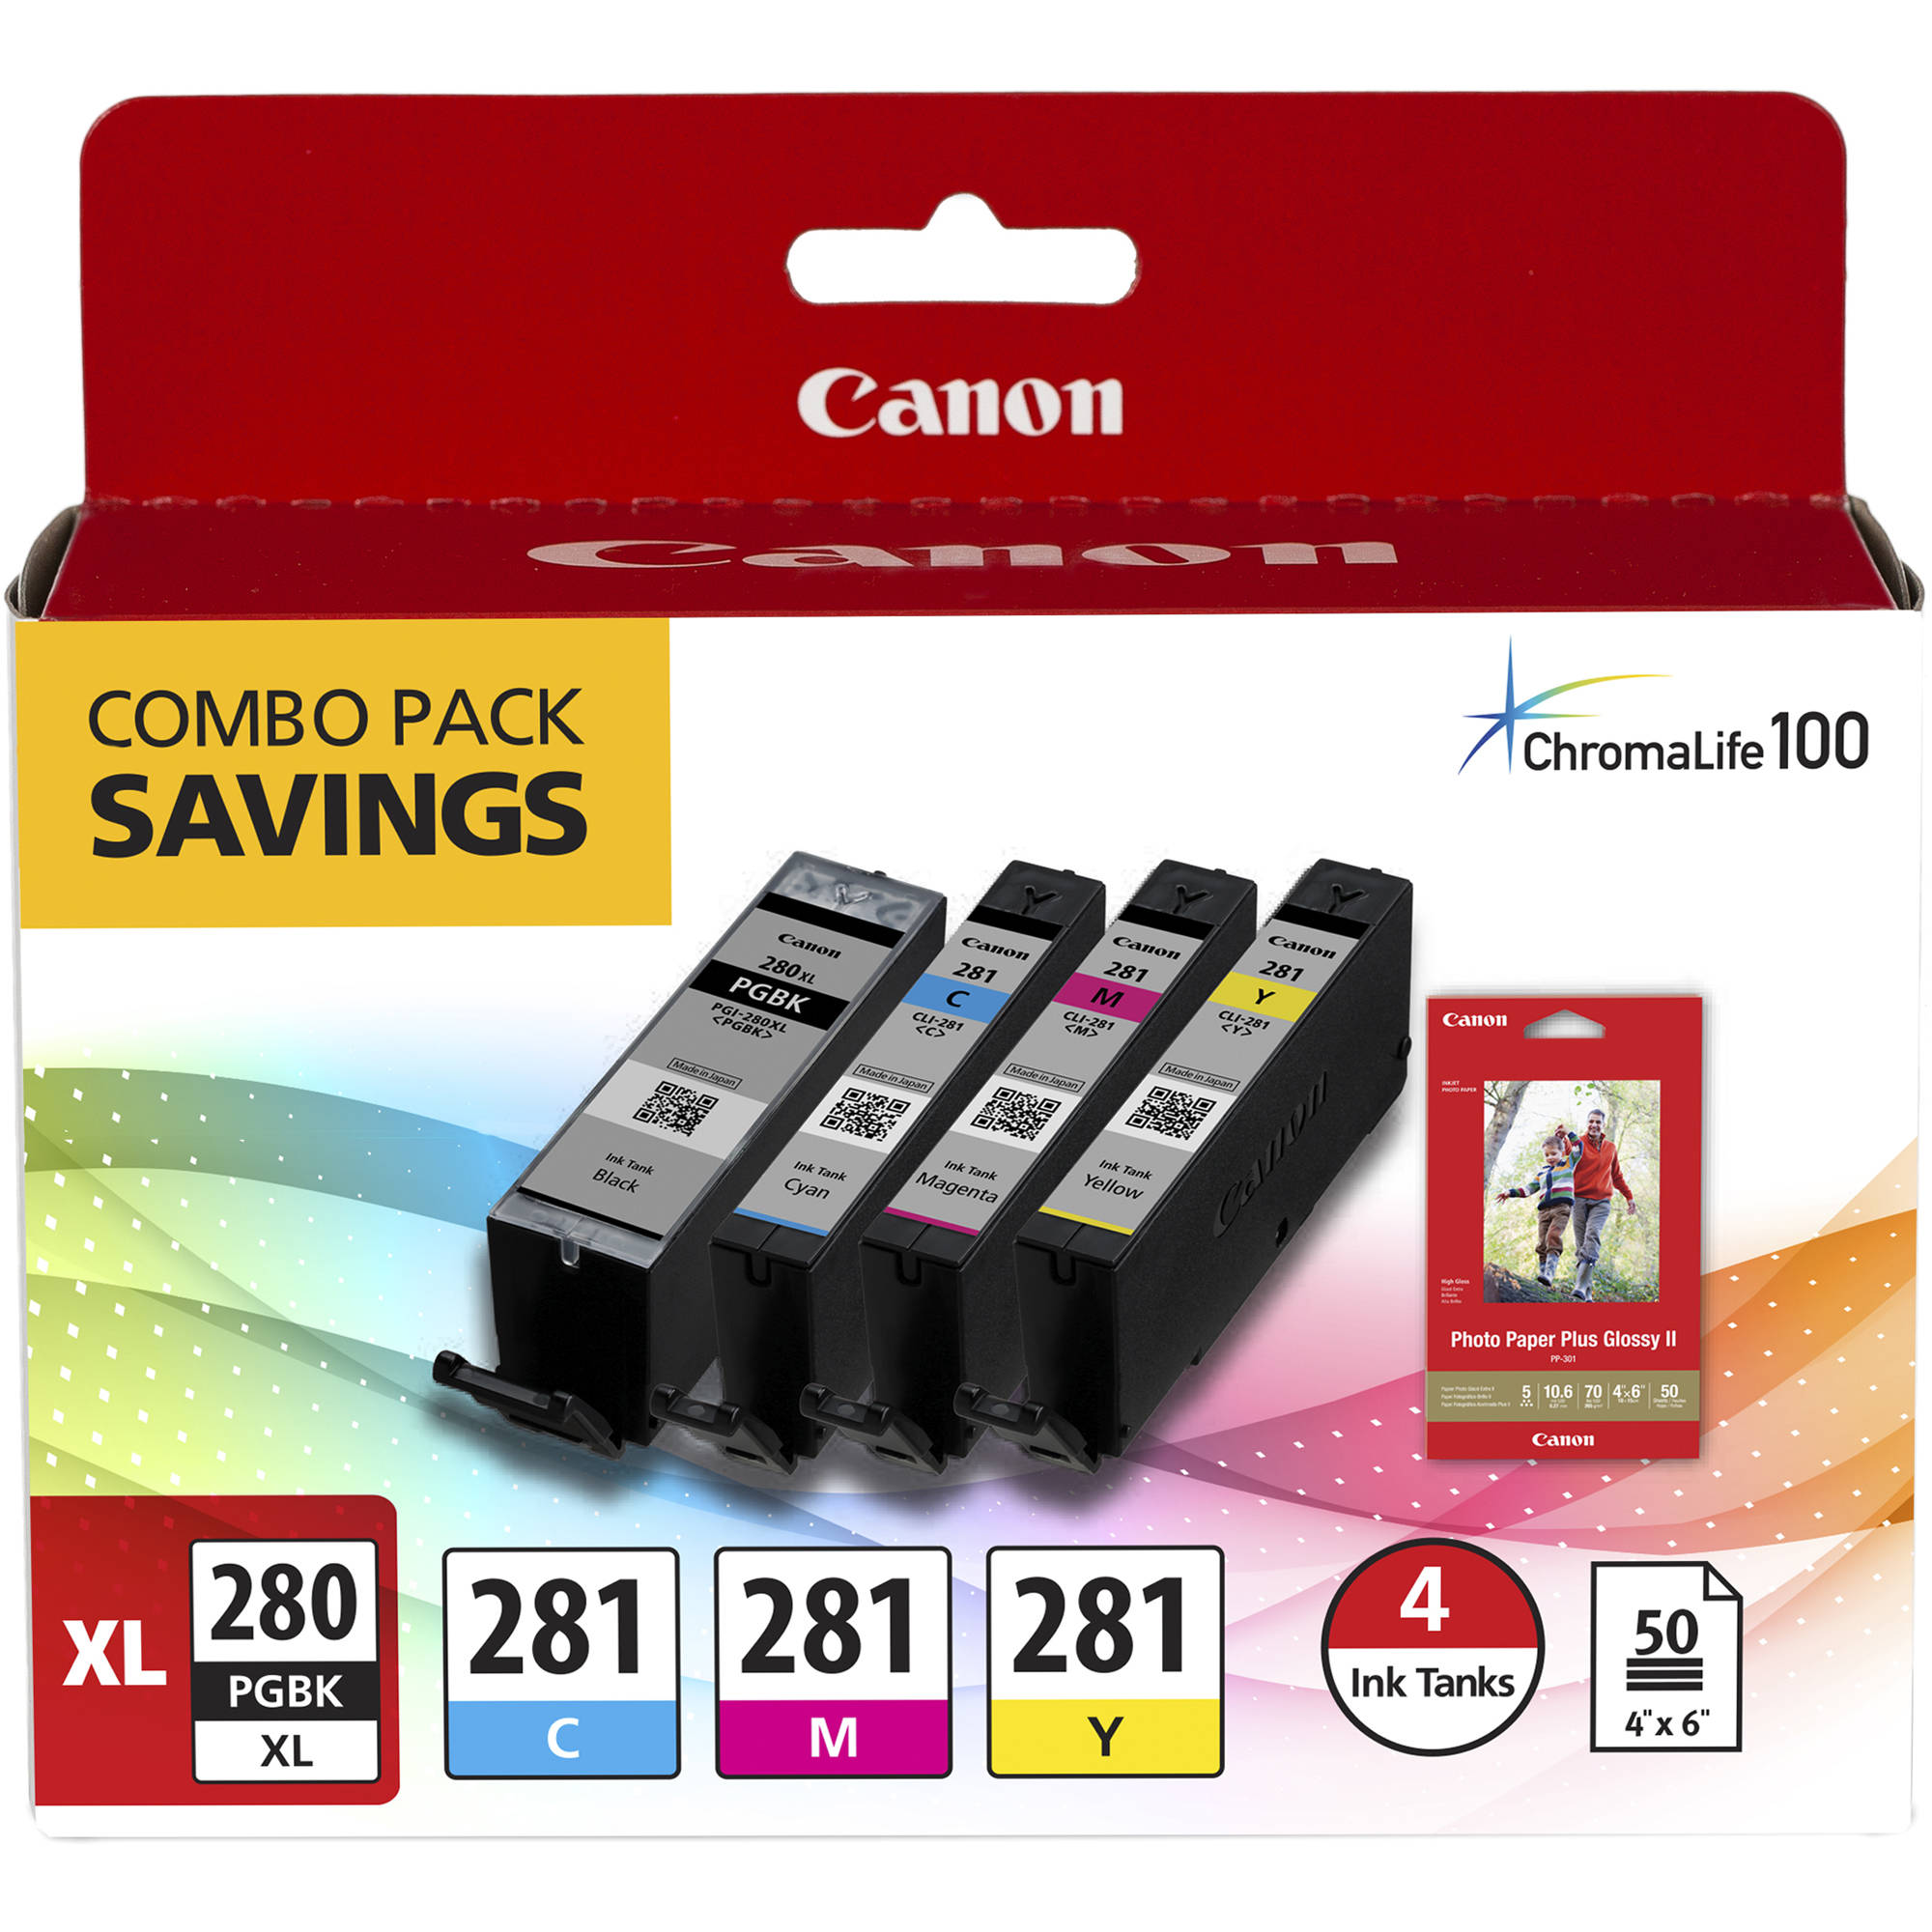 "Canon PGI-280 XL / CLI-281 Combo Ink Pack with Glossy Photo Paper (50 Sheets, 4""x6"")"